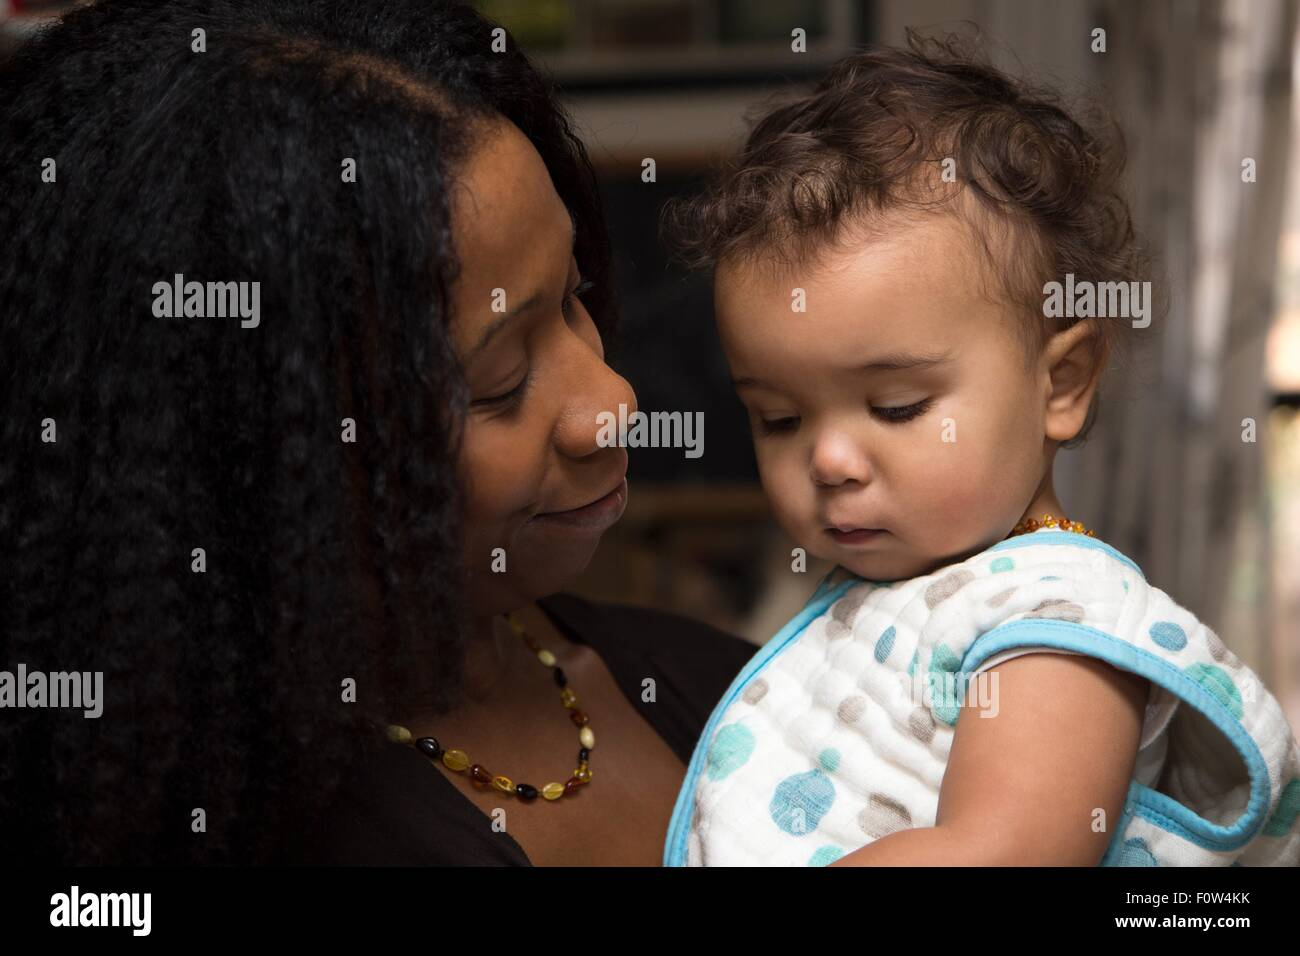 Tender portrait of mid adult woman and toddler daughter - Stock Image